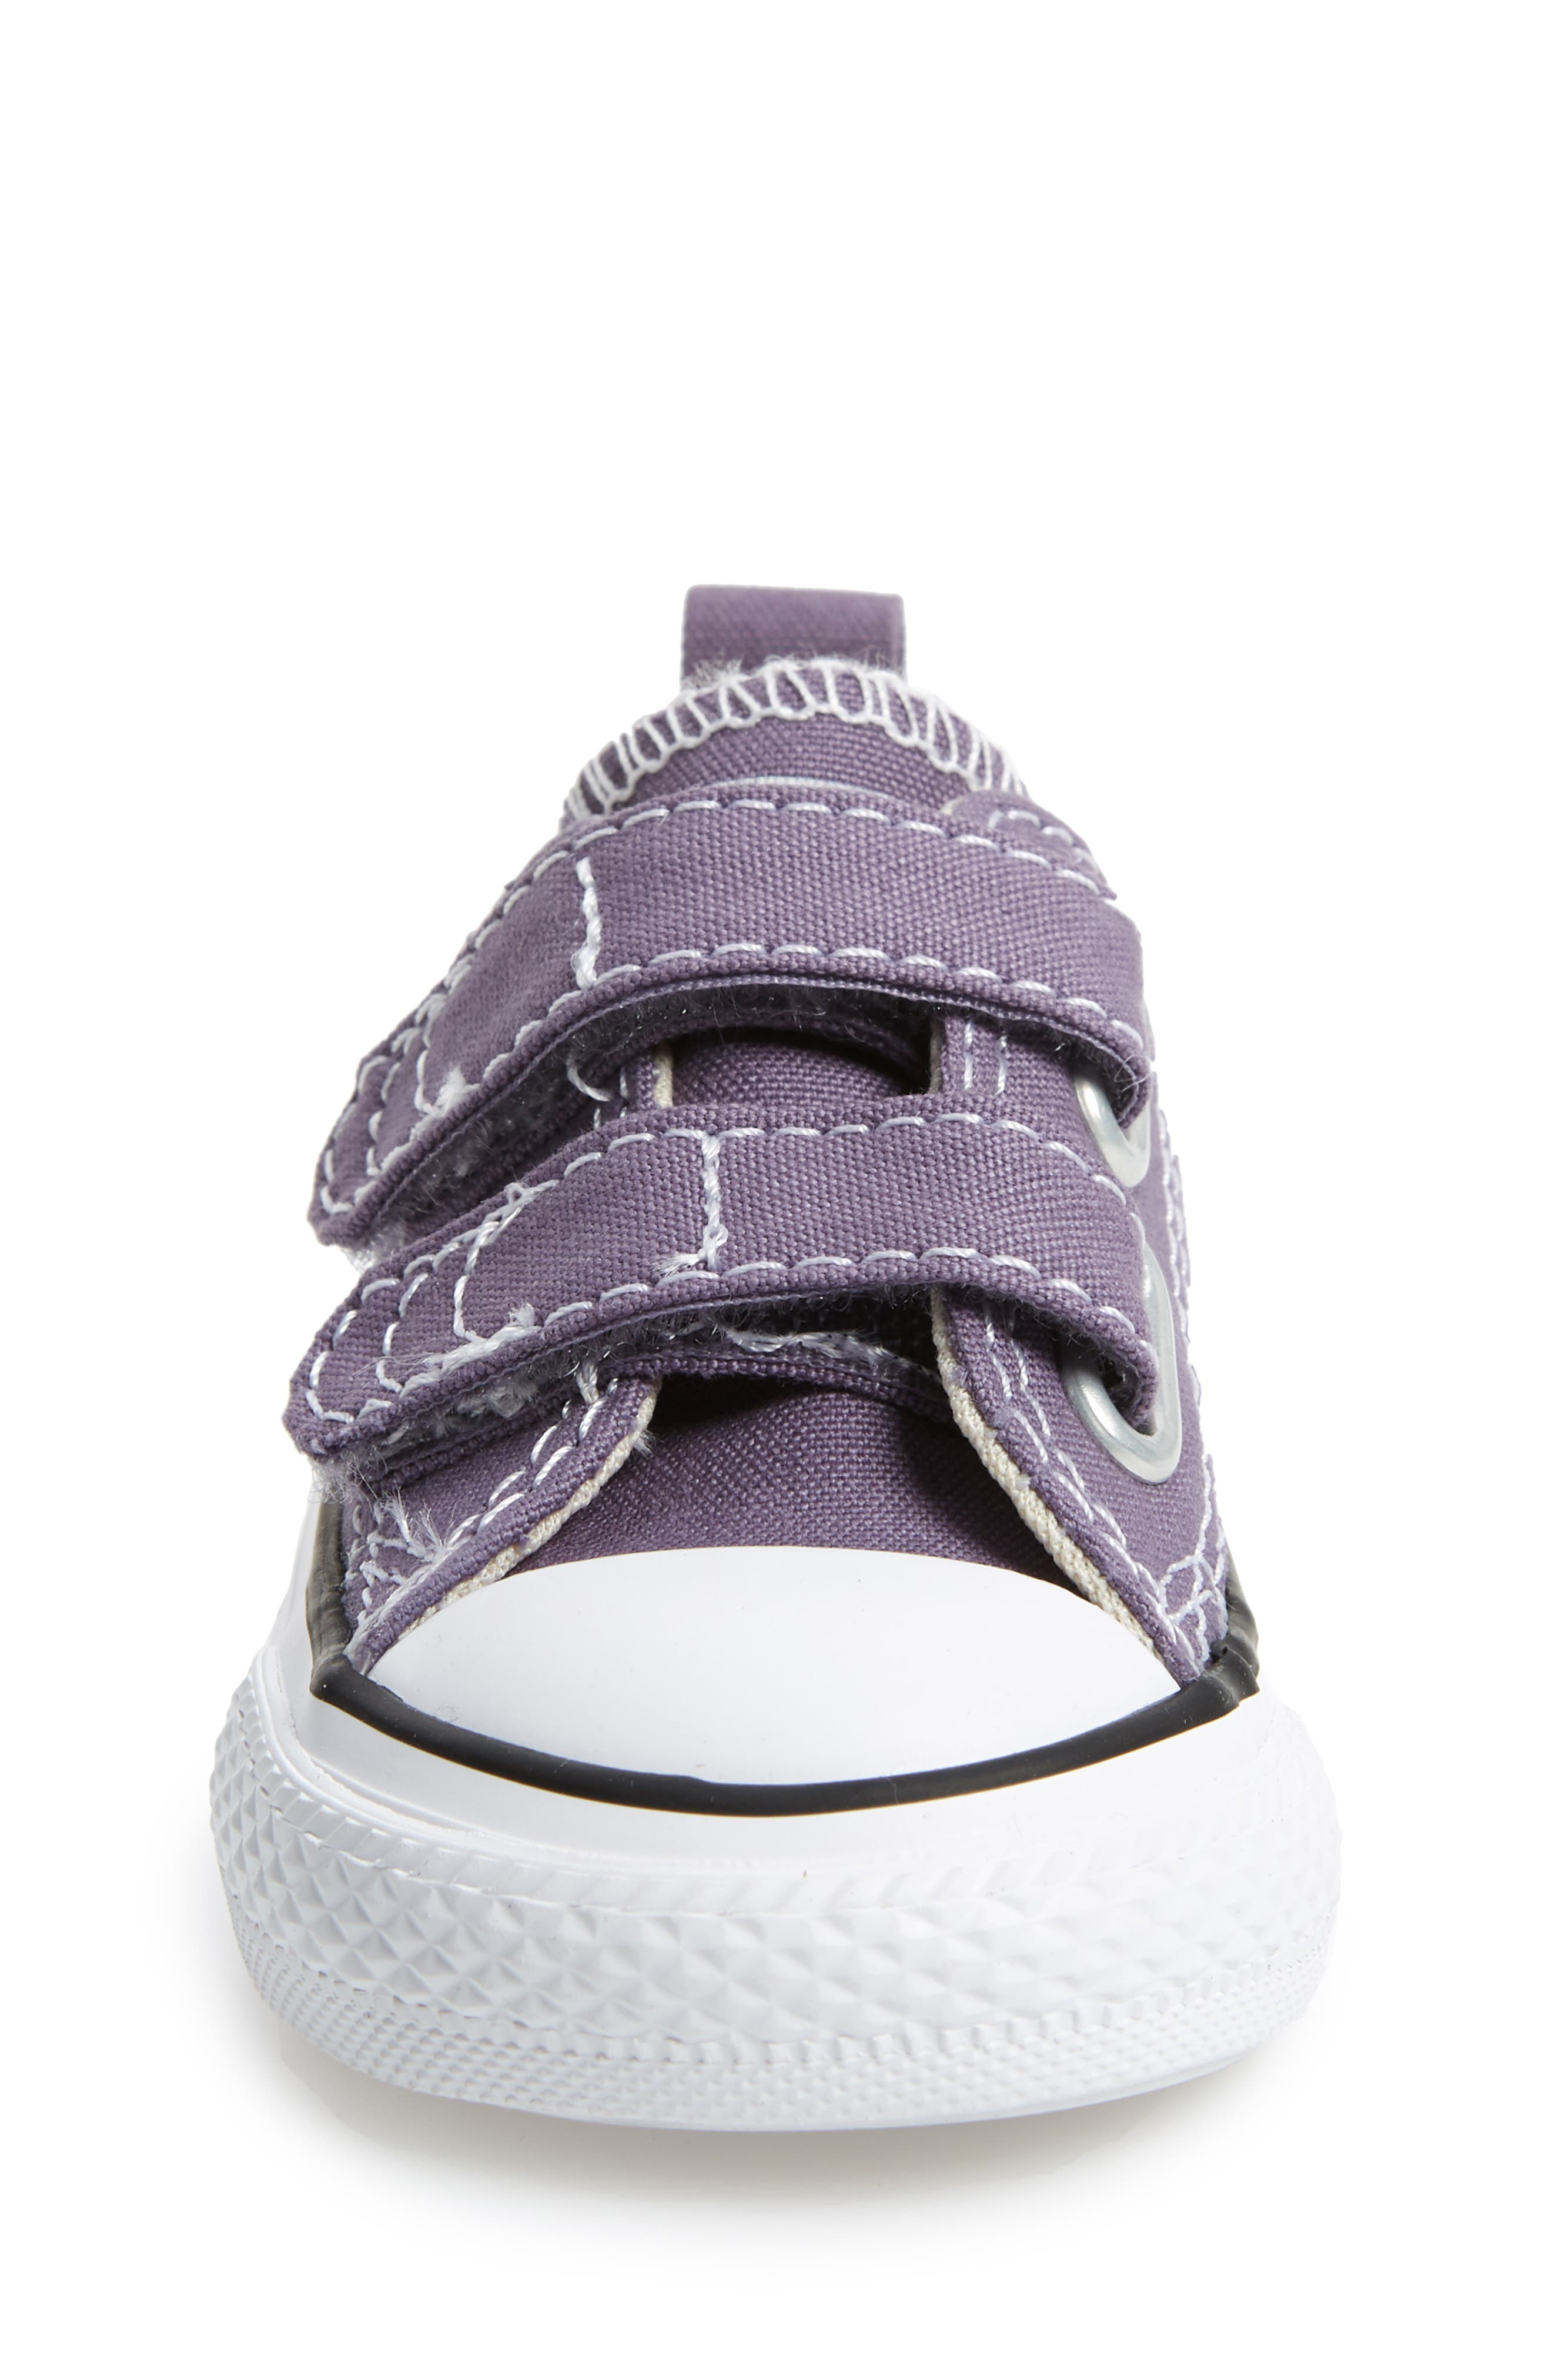 Chuck Taylor<sup>®</sup> 'Double Strap' Sneaker,                             Alternate thumbnail 4, color,                             MOODY PURPLE/ NATURAL IVORY